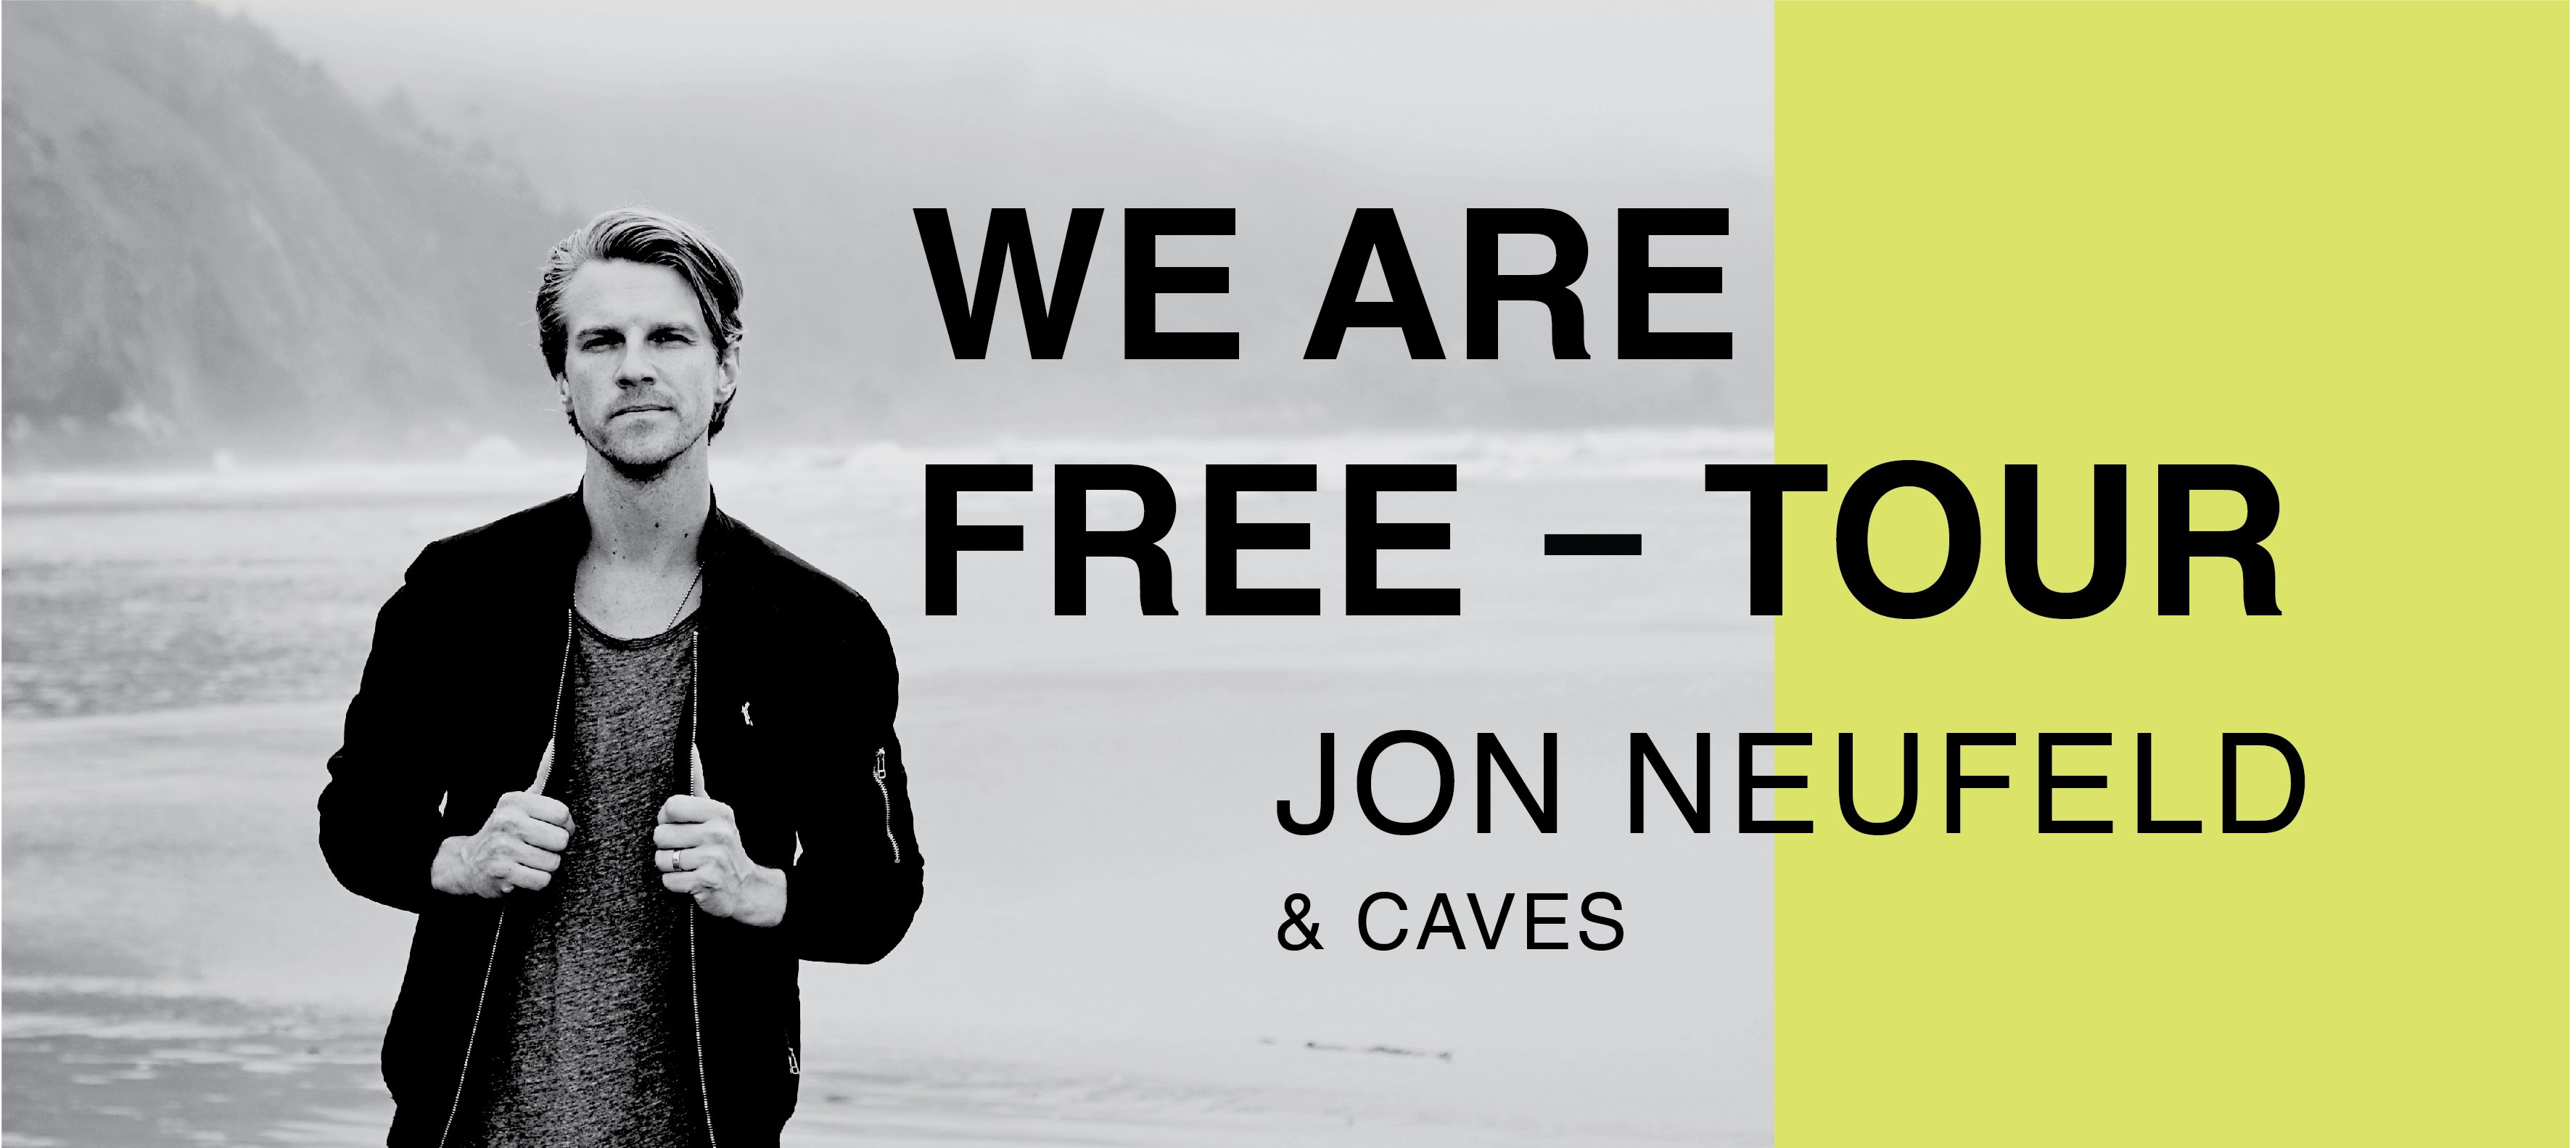 Tickets for WE ARE FREE Tour with Jon Neufeld and Caves in Orleans from BuzzTix